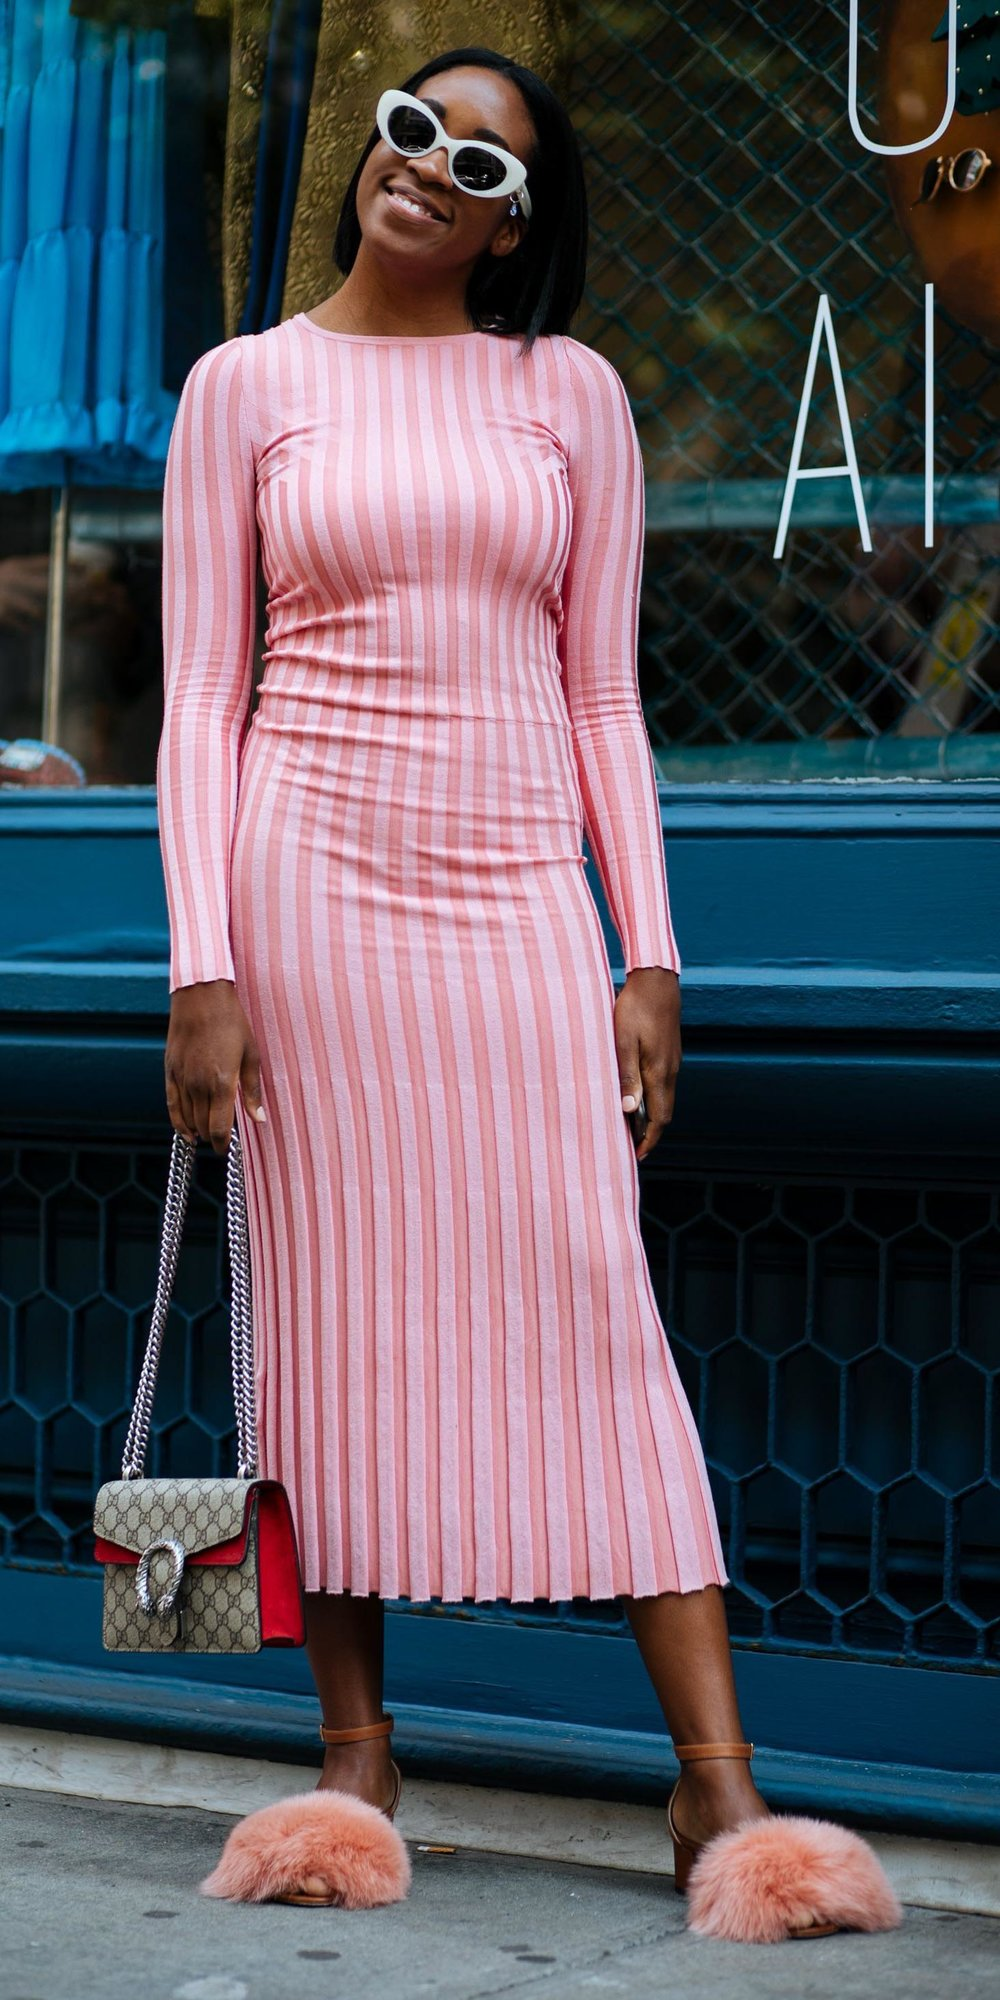 pink-light-dress-midi-bodycon-peach-shoe-sandalh-sun-brun-bob-spring-summer-lunch.jpg